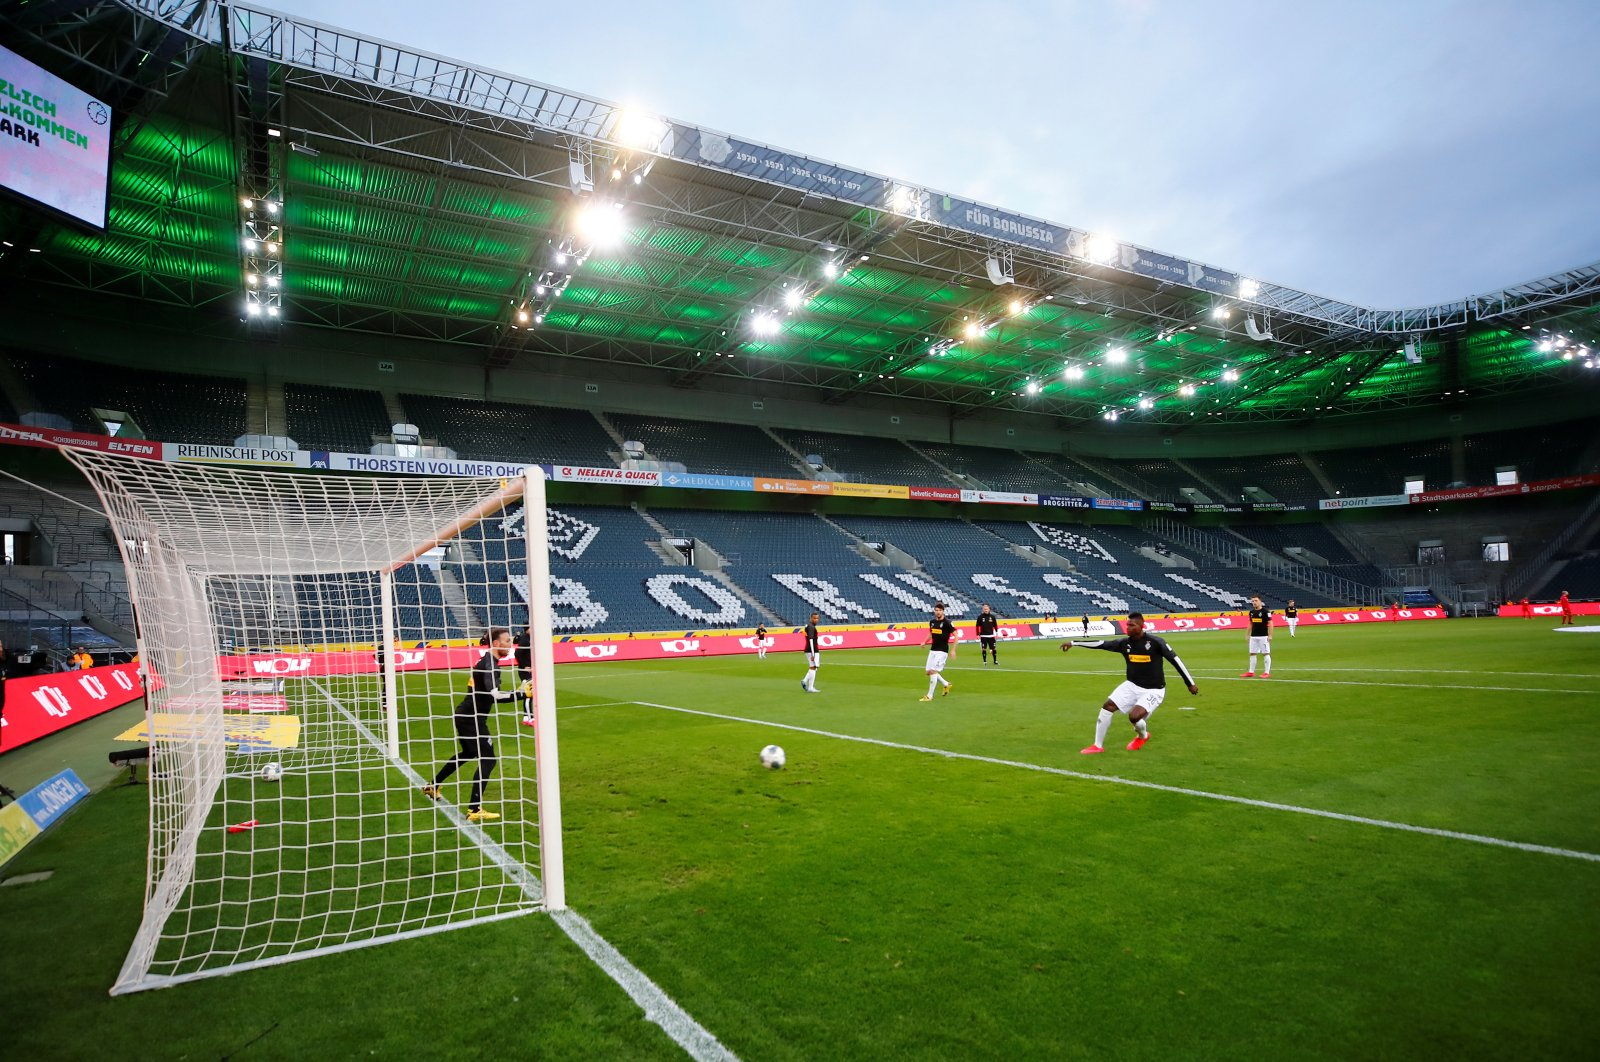 General view of Borussia players during the warm up before a match that was played behind closed doors on March 11, 2020 at Borussia-Park, Moenchengladbach, Germany. (Reuters Photo)